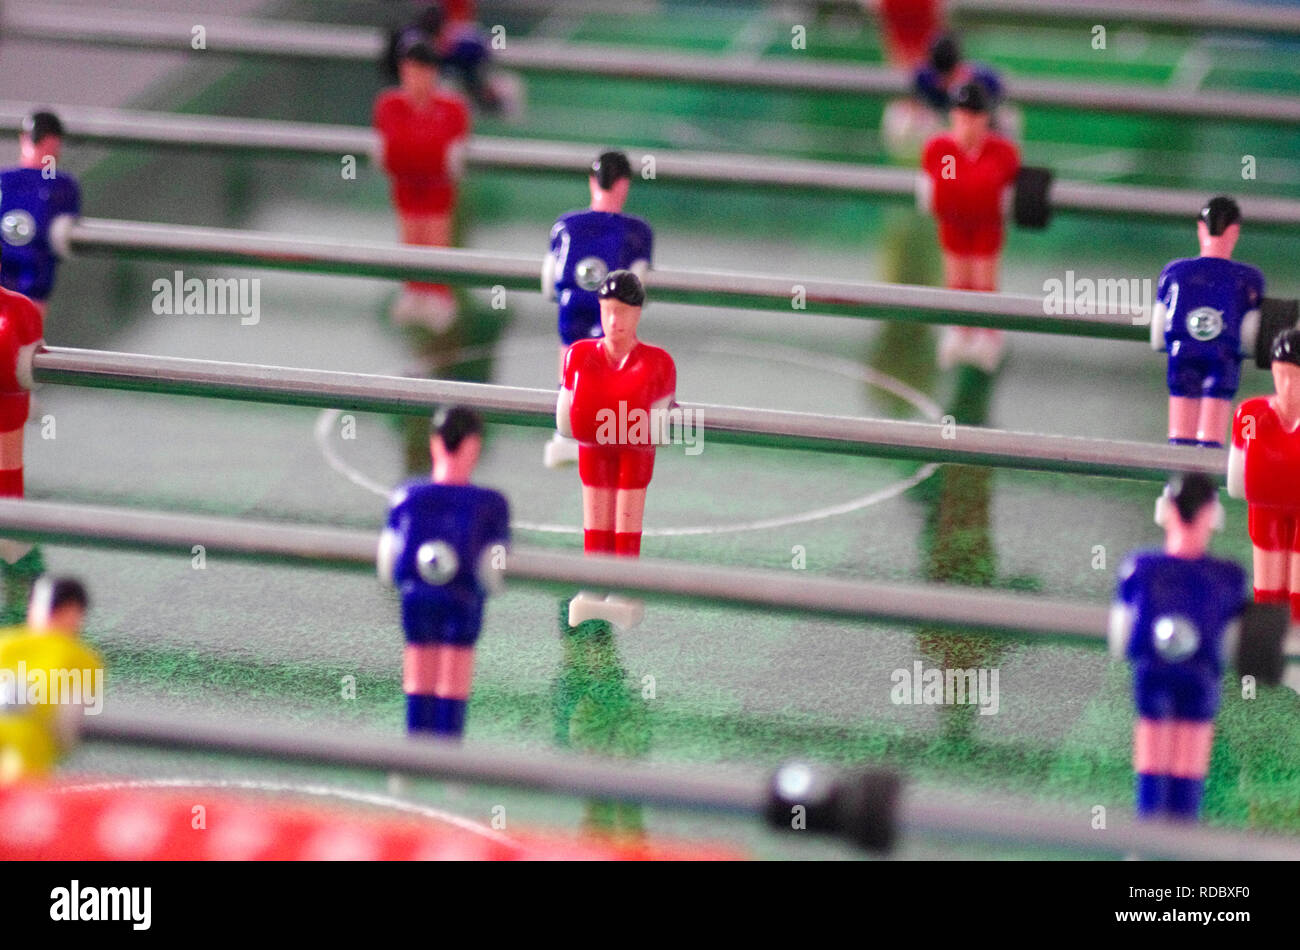 Table Football or Soccer Game - Stock Image